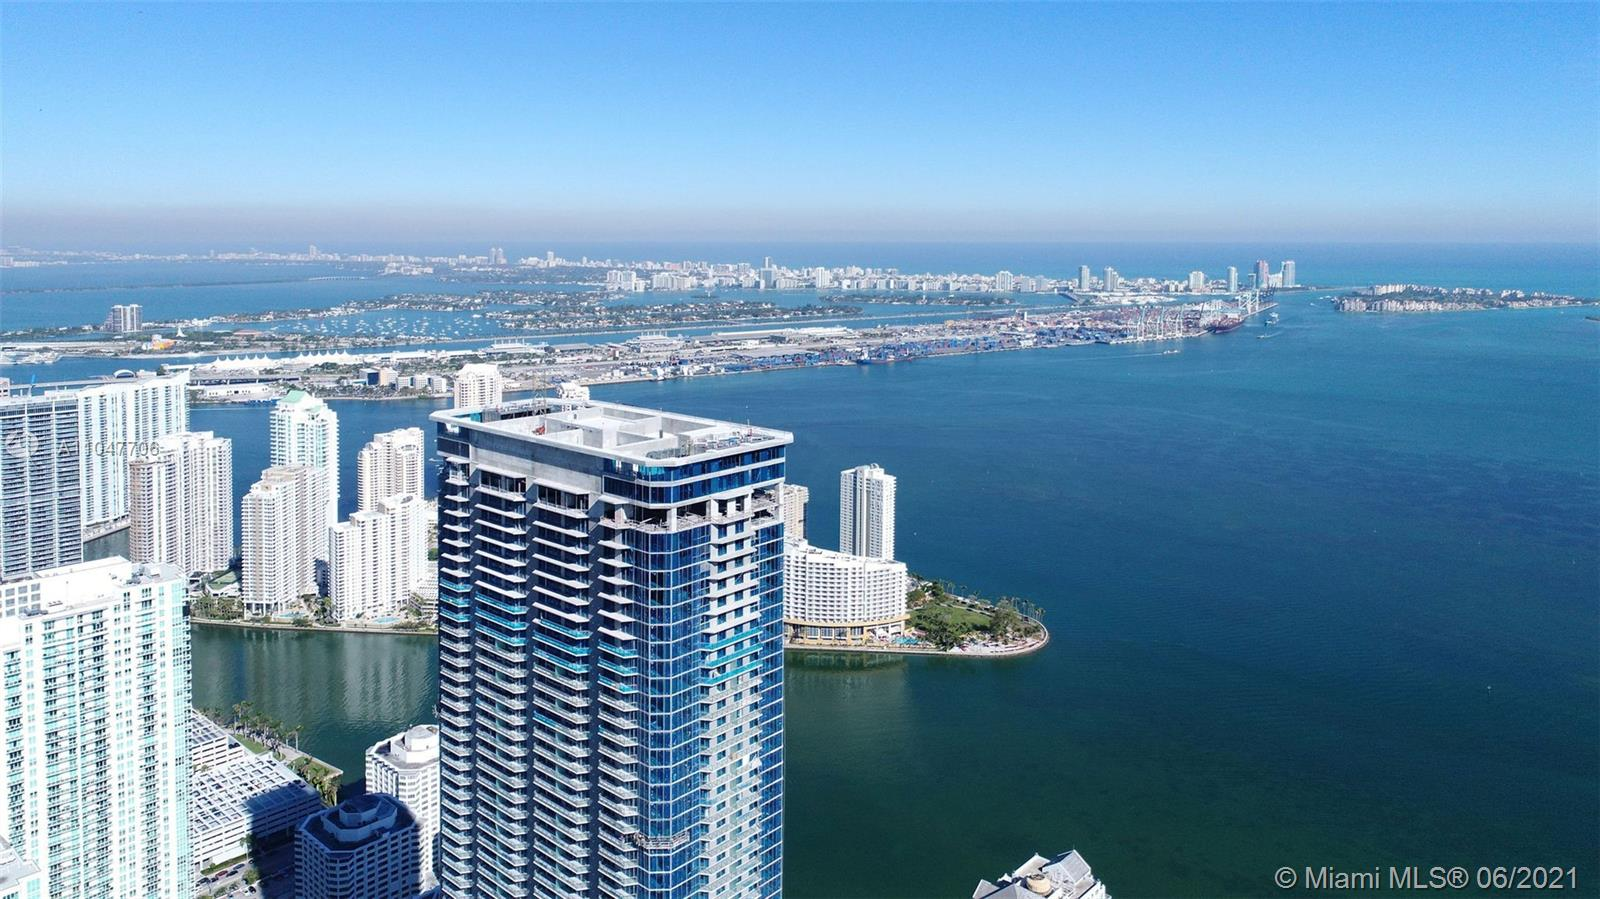 Spacious corner 1 bed w den and expansive views from the 44th floor of 1010 Brickell. Enjoy the large balcony which is great for entertaining friends and family. Enjoy the resort lifestyle with extensive amenities...  basketball court, two story club reserved for the building community, rooftop pool, rooftop bar, indoor pool on 50th floor, fitness center, kids activity room, spa, sauna, treatment rooms, bowling, virtual golf, valet parking, 24-hour security and much more! Located in the center of Brickell within distance of everything! Minutes to Brickell City Centre and many shopping, dining and entertainment venues. Virtual staged furniture in photos.